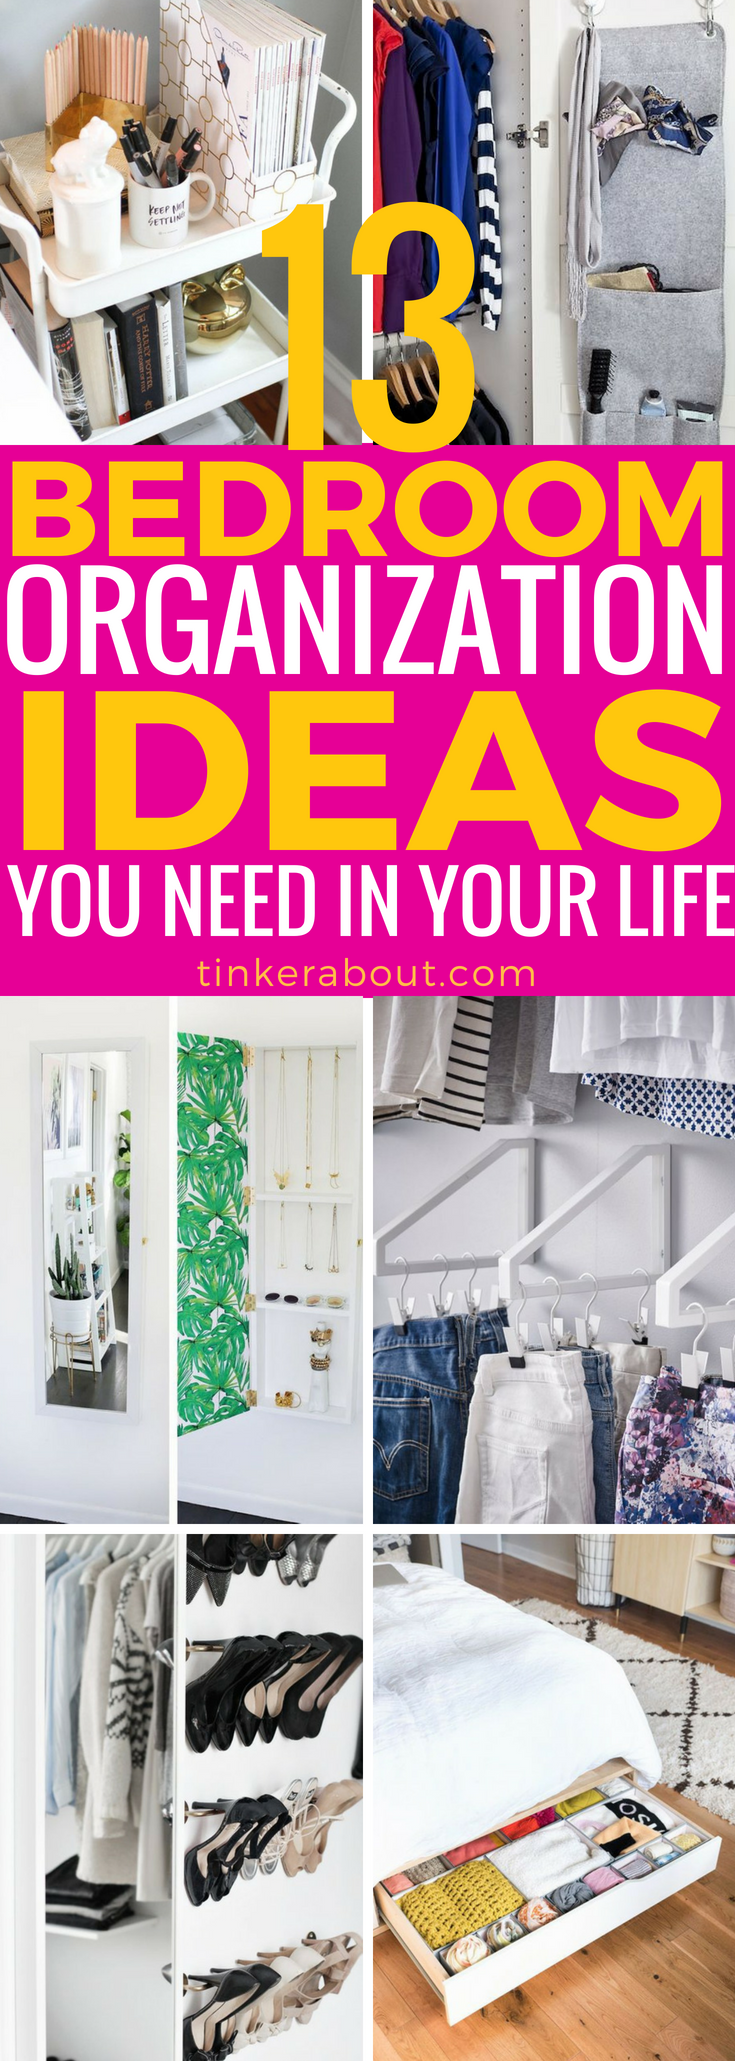 13 Bedroom Organization Ideas Every Girl Needs To Kow is part of bedroom Organization Closet - Bedrooms can be a messy place sometimes  not anymore with these clever bedroom organization ideas! Click through and get organized